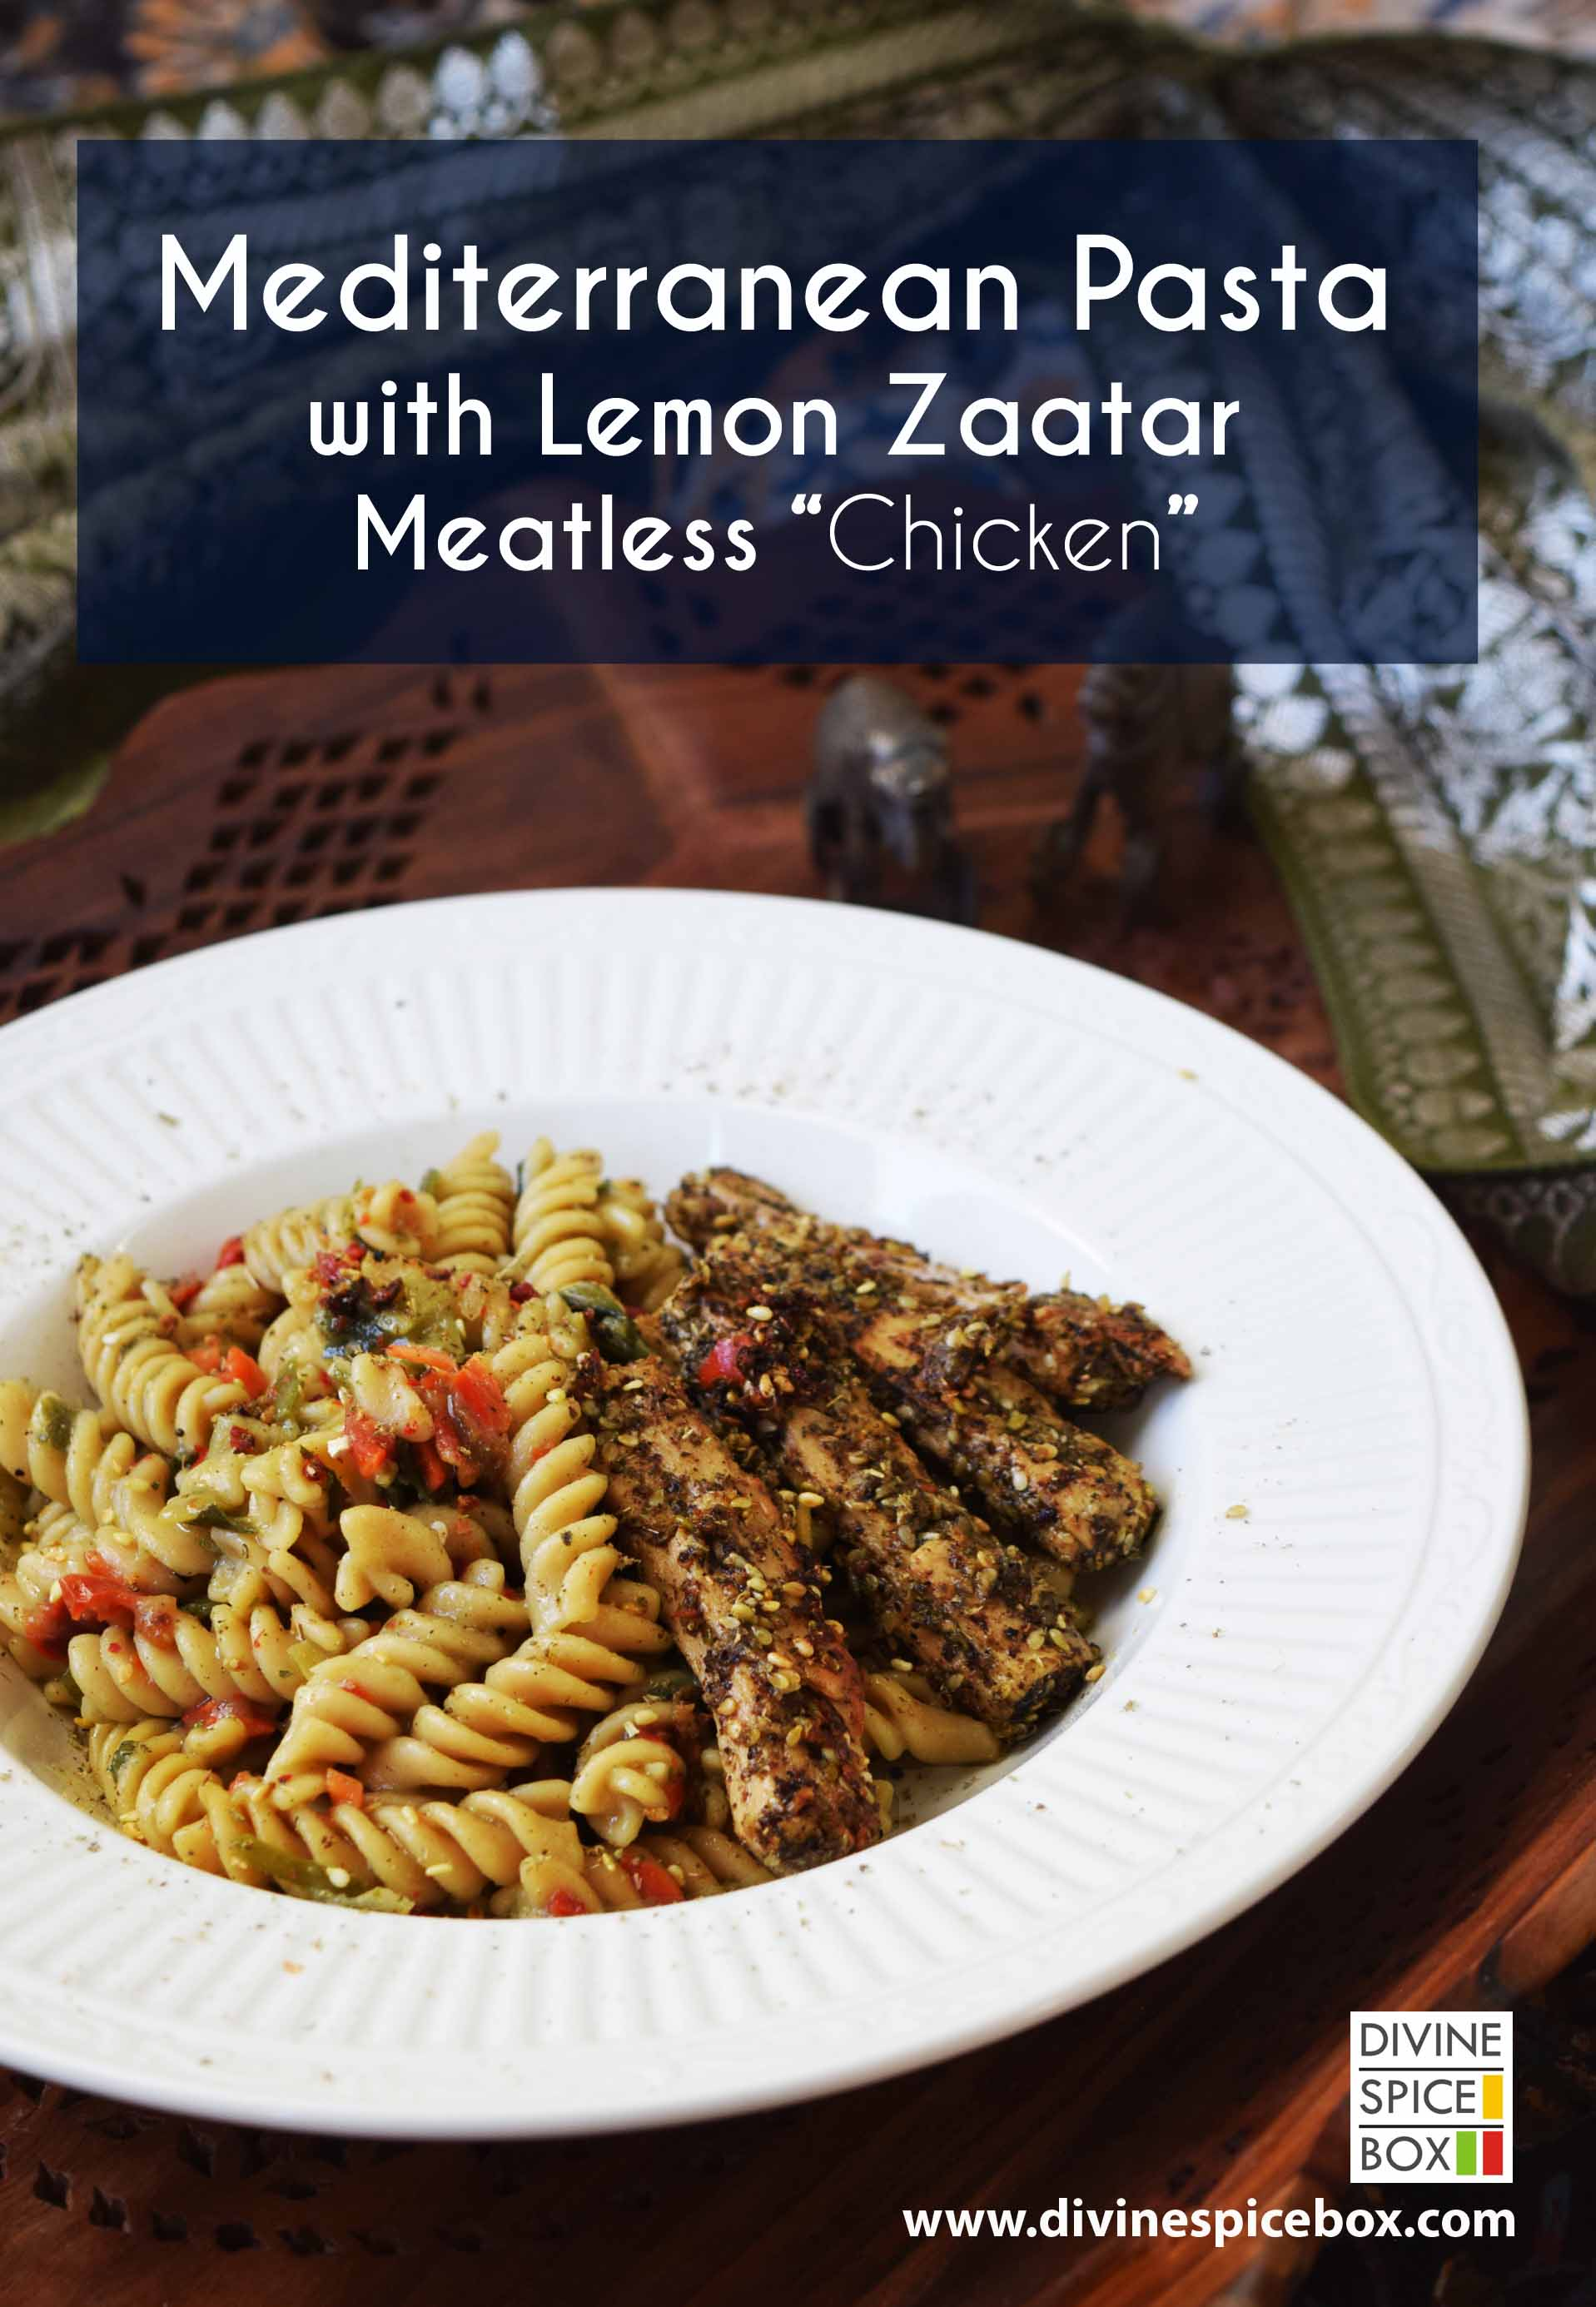 med pasta lemon zaatar copy.jpg